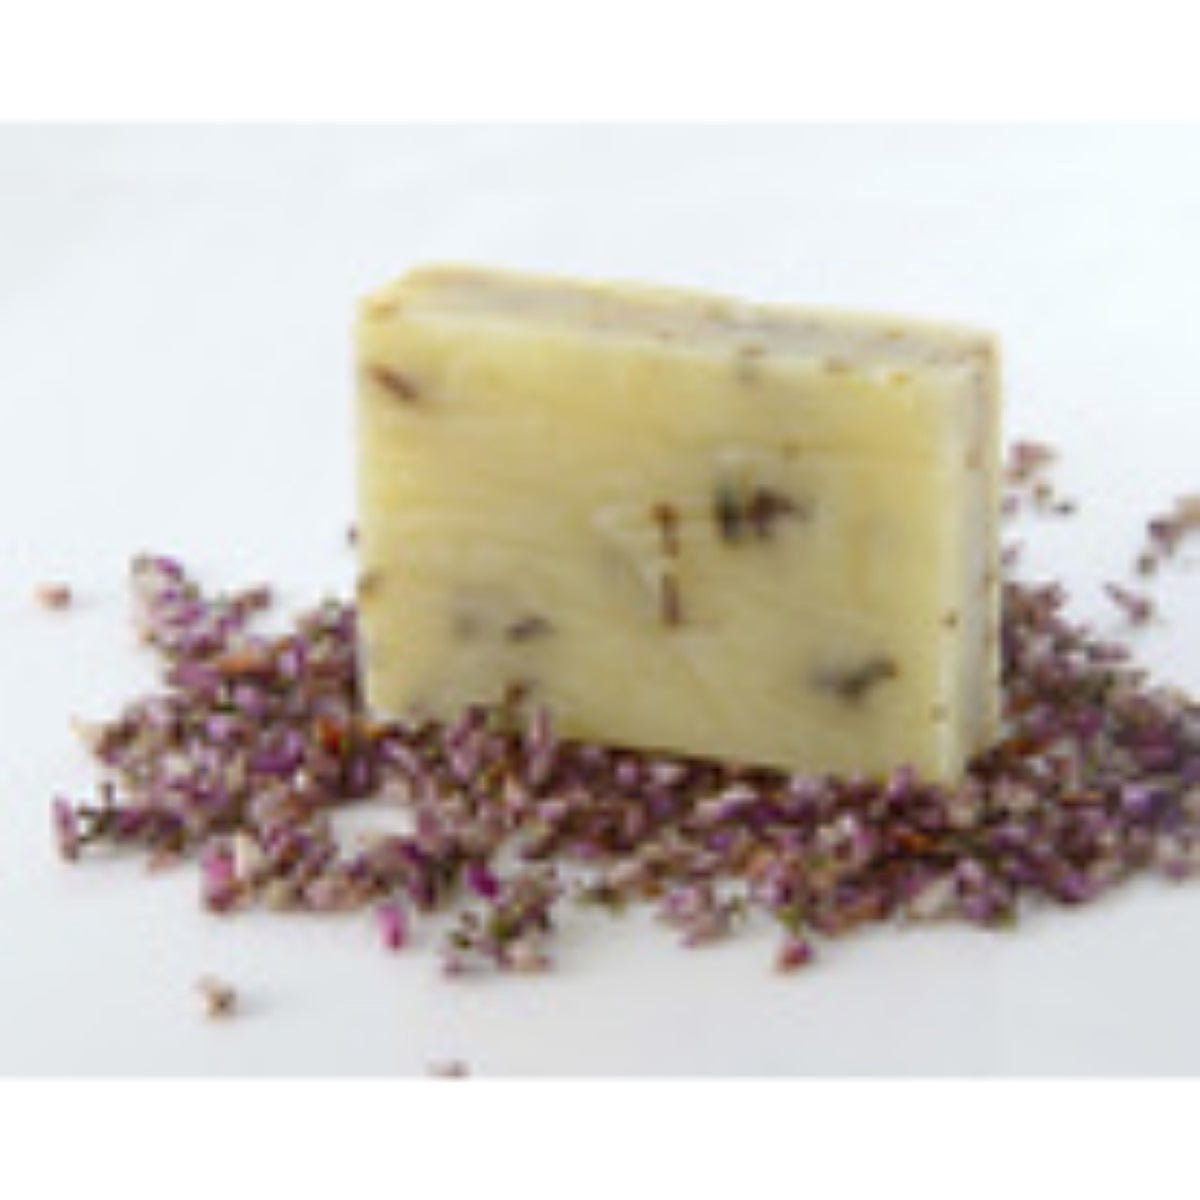 Erris Pure Soaps